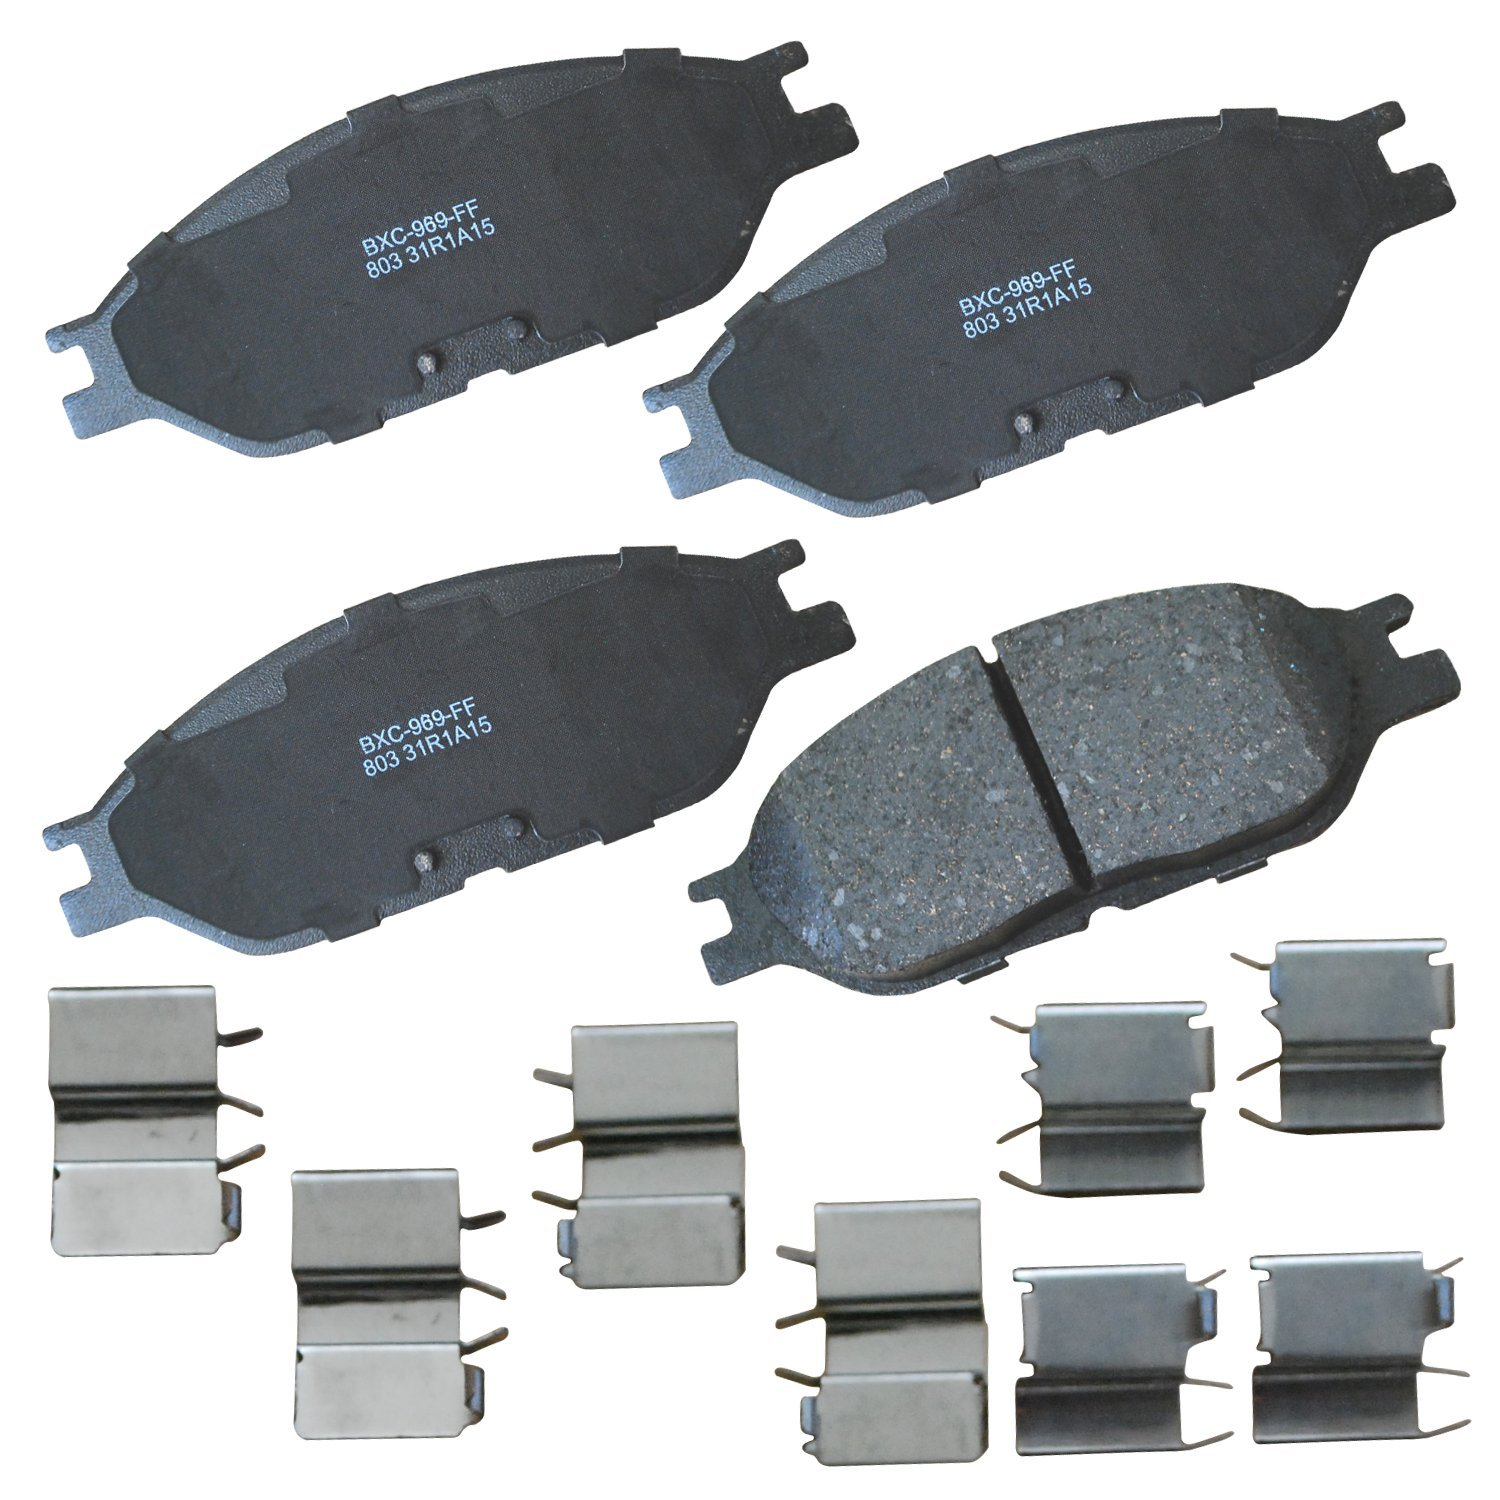 Stop By Bendix SBC803 Brake Pads